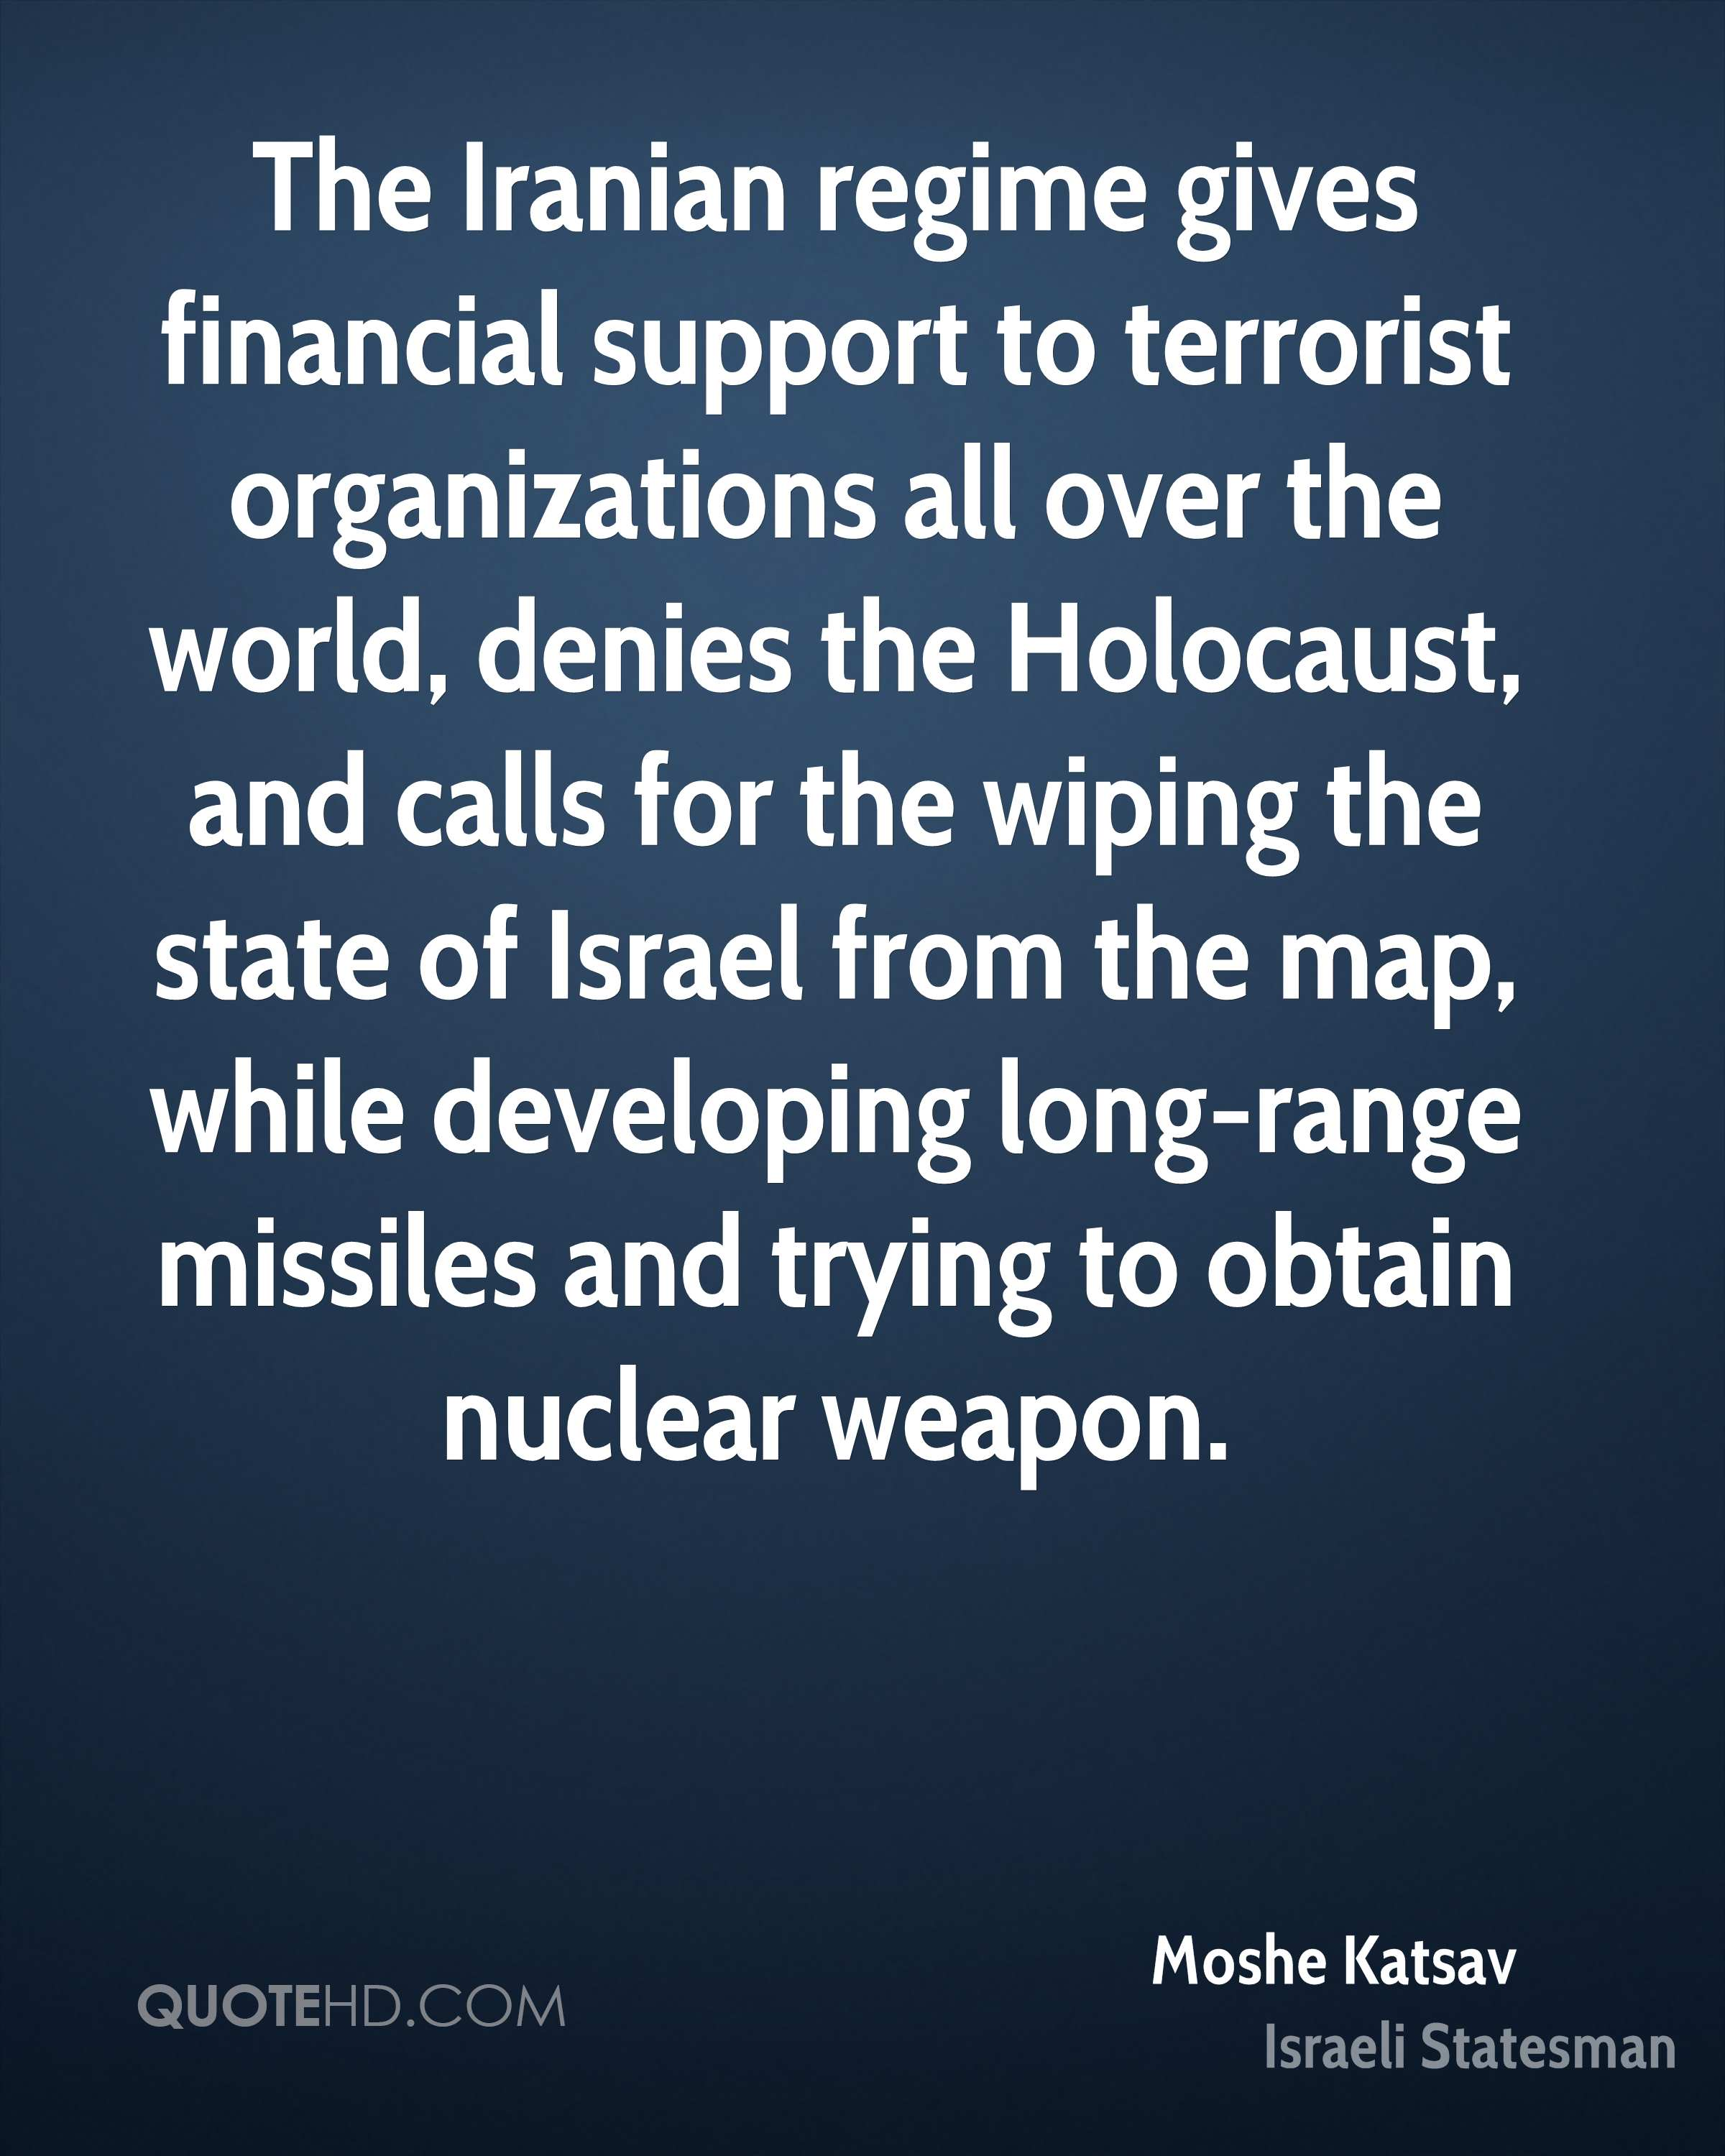 The Iranian regime gives financial support to terrorist organizations all over the world, denies the Holocaust, and calls for the wiping the state of Israel from the map, while developing long-range missiles and trying to obtain nuclear weapon.